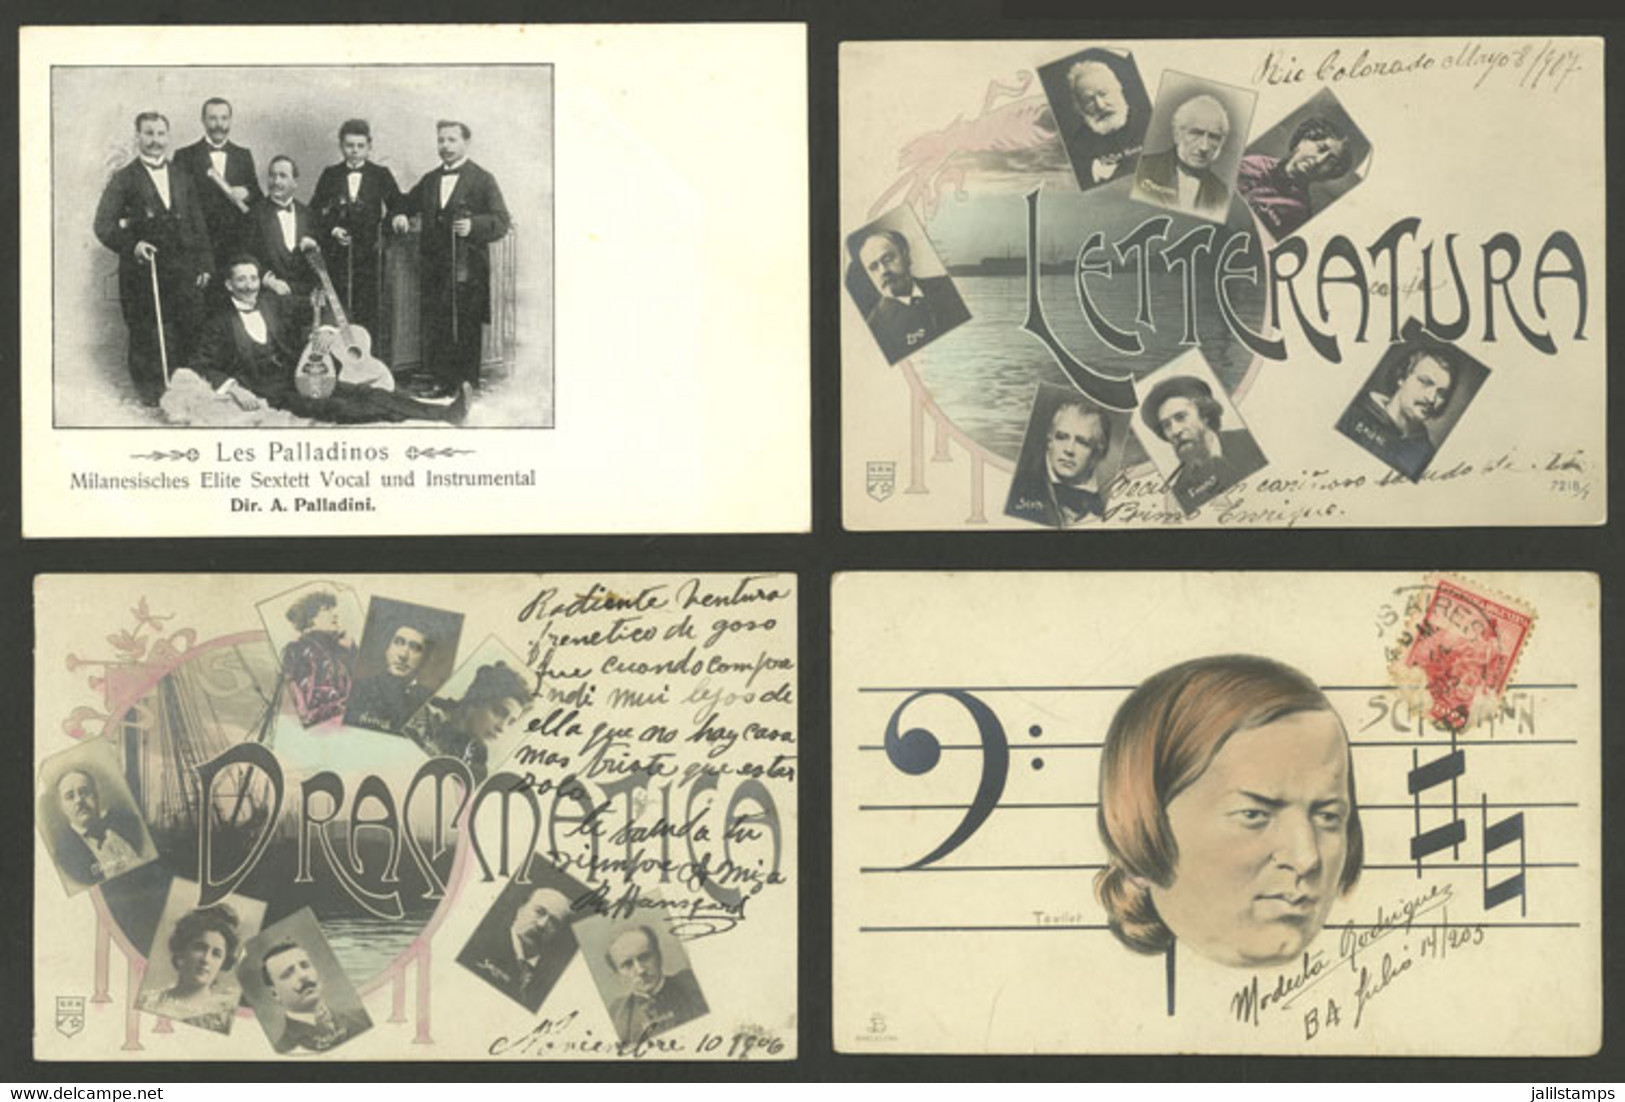 WORLDWIDE: ARTISTS, MUSICIANS, COMPOSERS, Etc: 17 Old Postcards With Very Interesting Views, Fine To VF General Quality, - Mundo